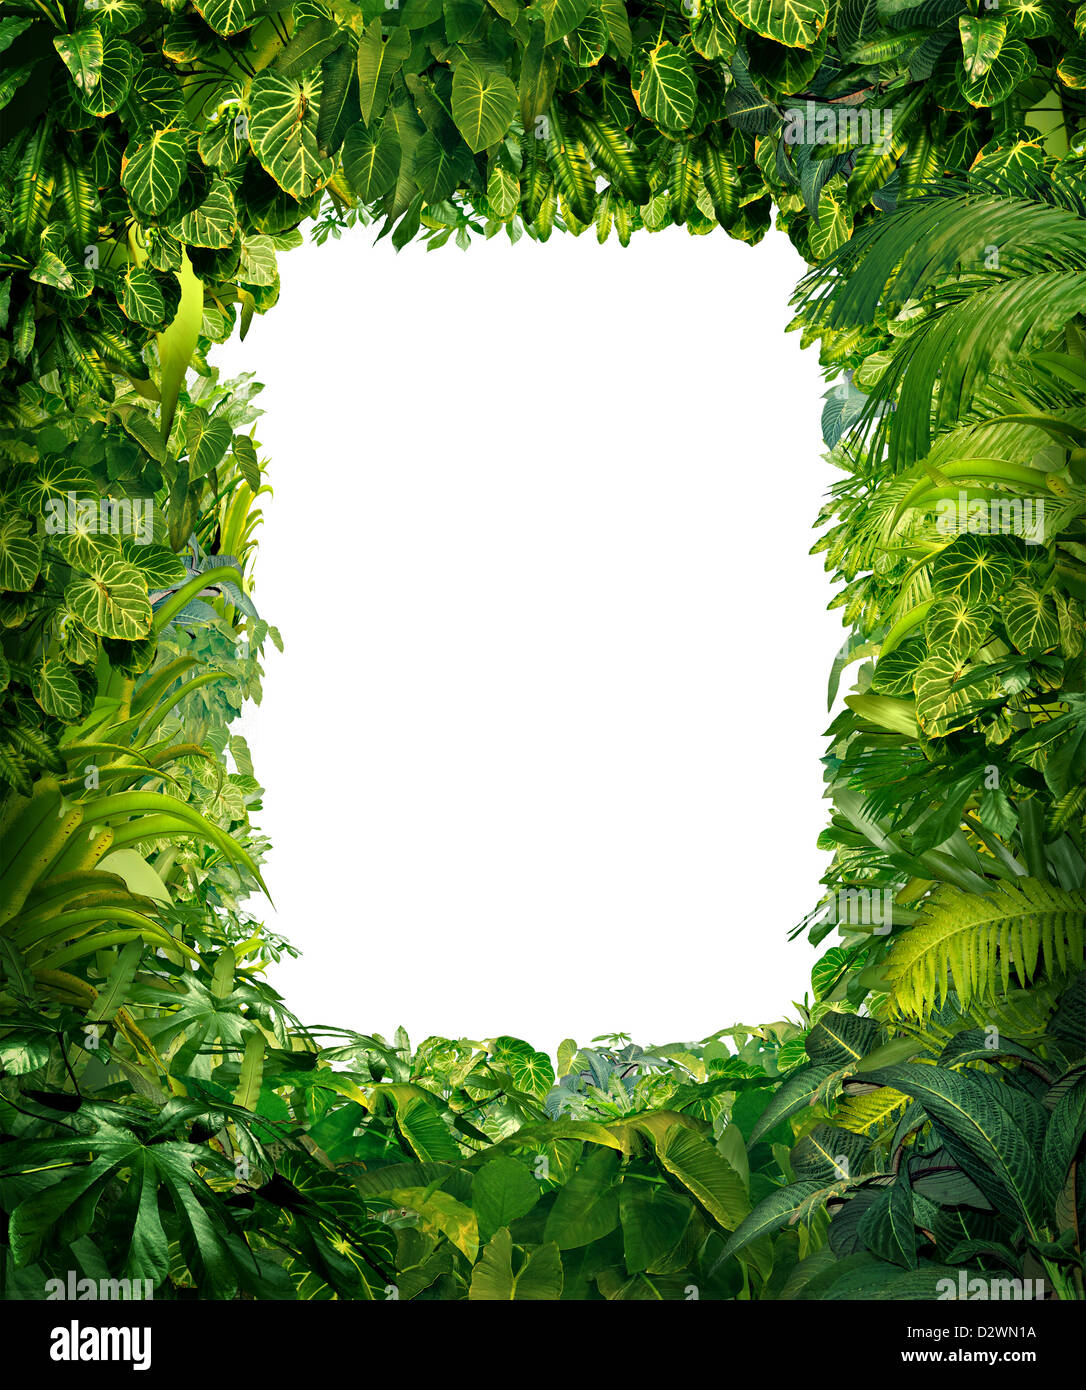 Jungle frame images galleries with a - Marcos para plantas ...